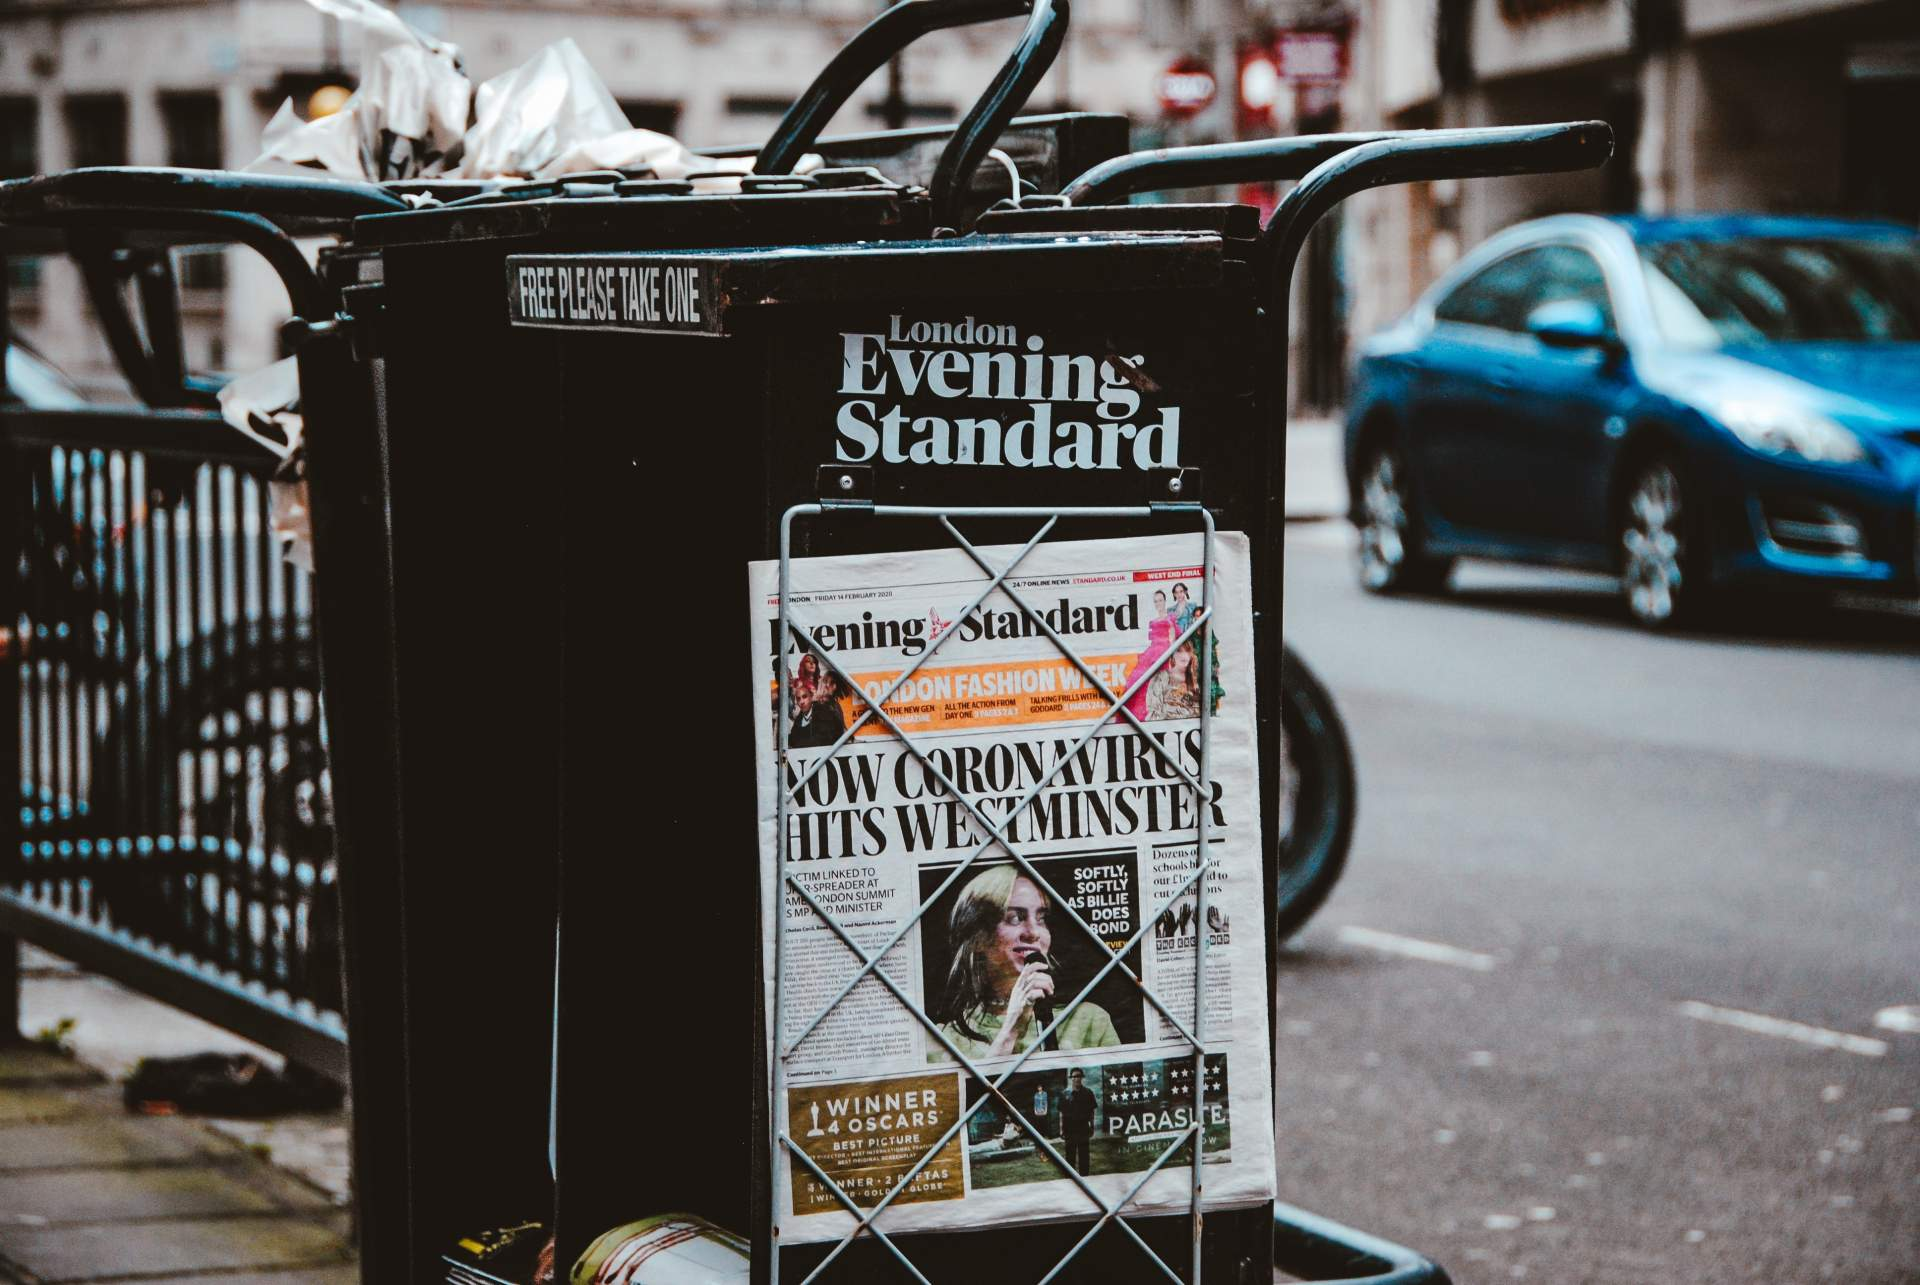 London evening standard newspaper stand showing Coronavirus article